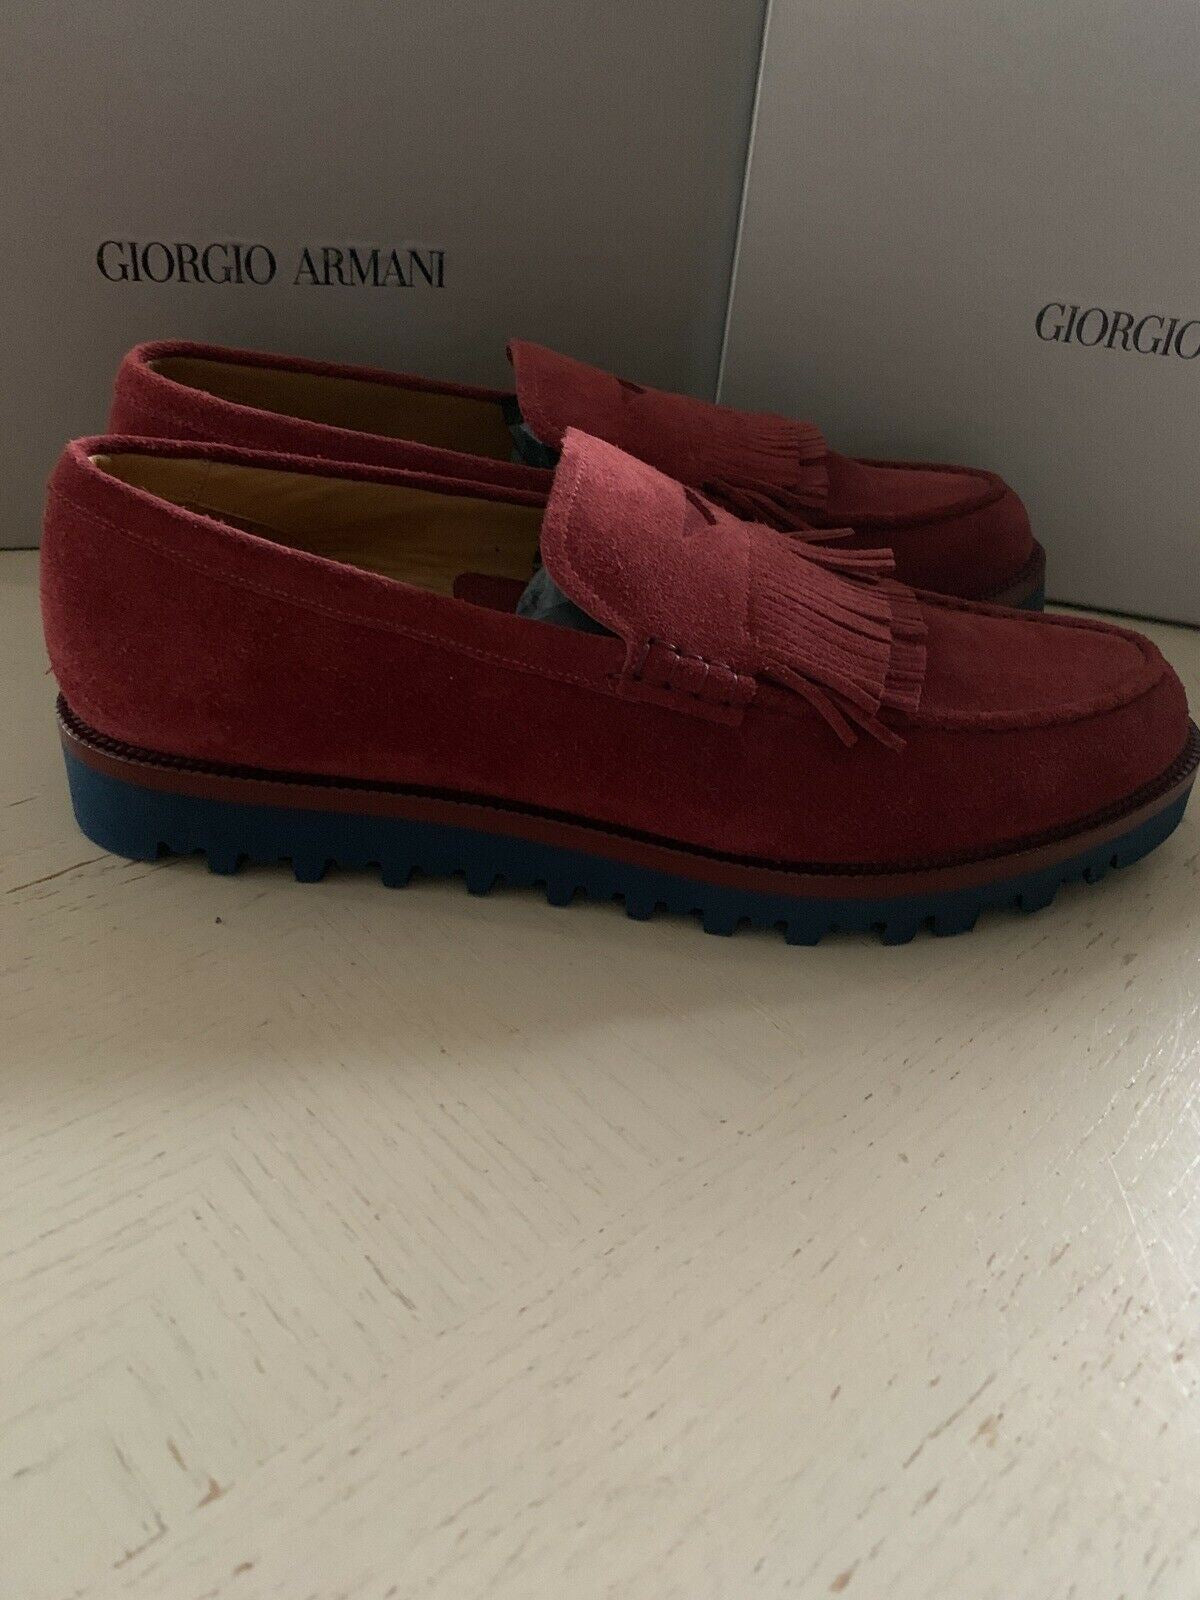 New $895 Giorgio Armani Mens Suede Loafers Shoes Burgundy 10.5 US X2A313 Ita